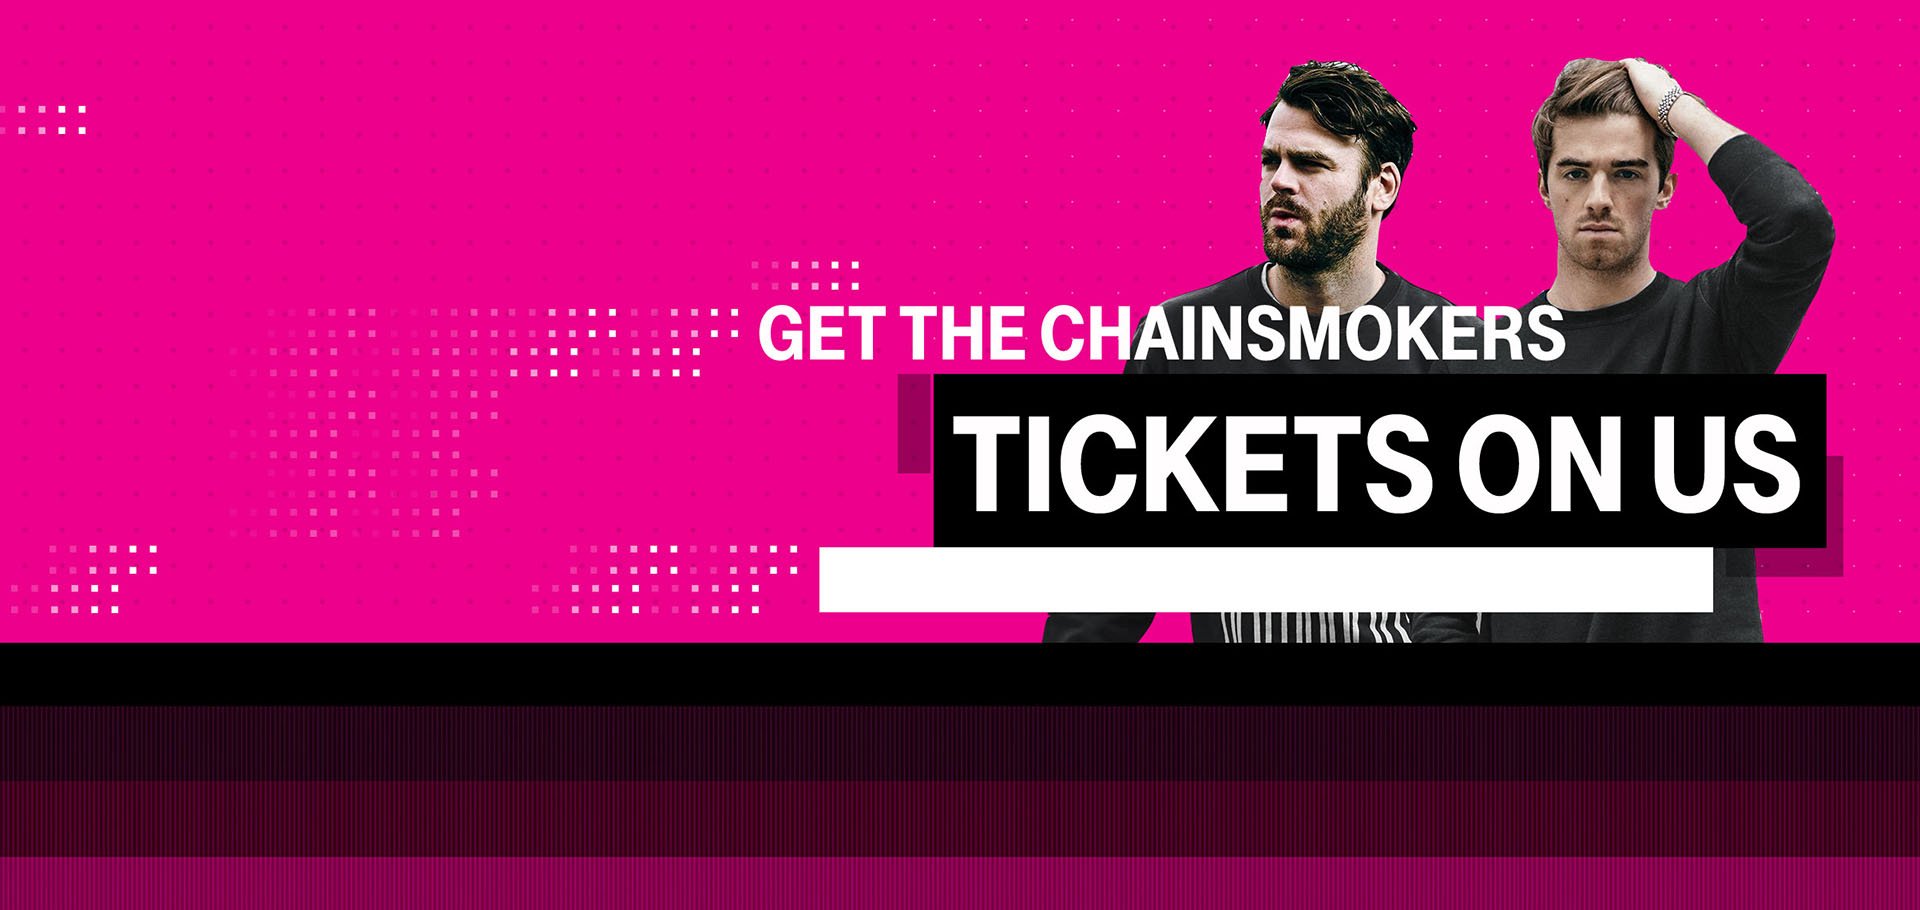 Chainsmokers Tickets Banner